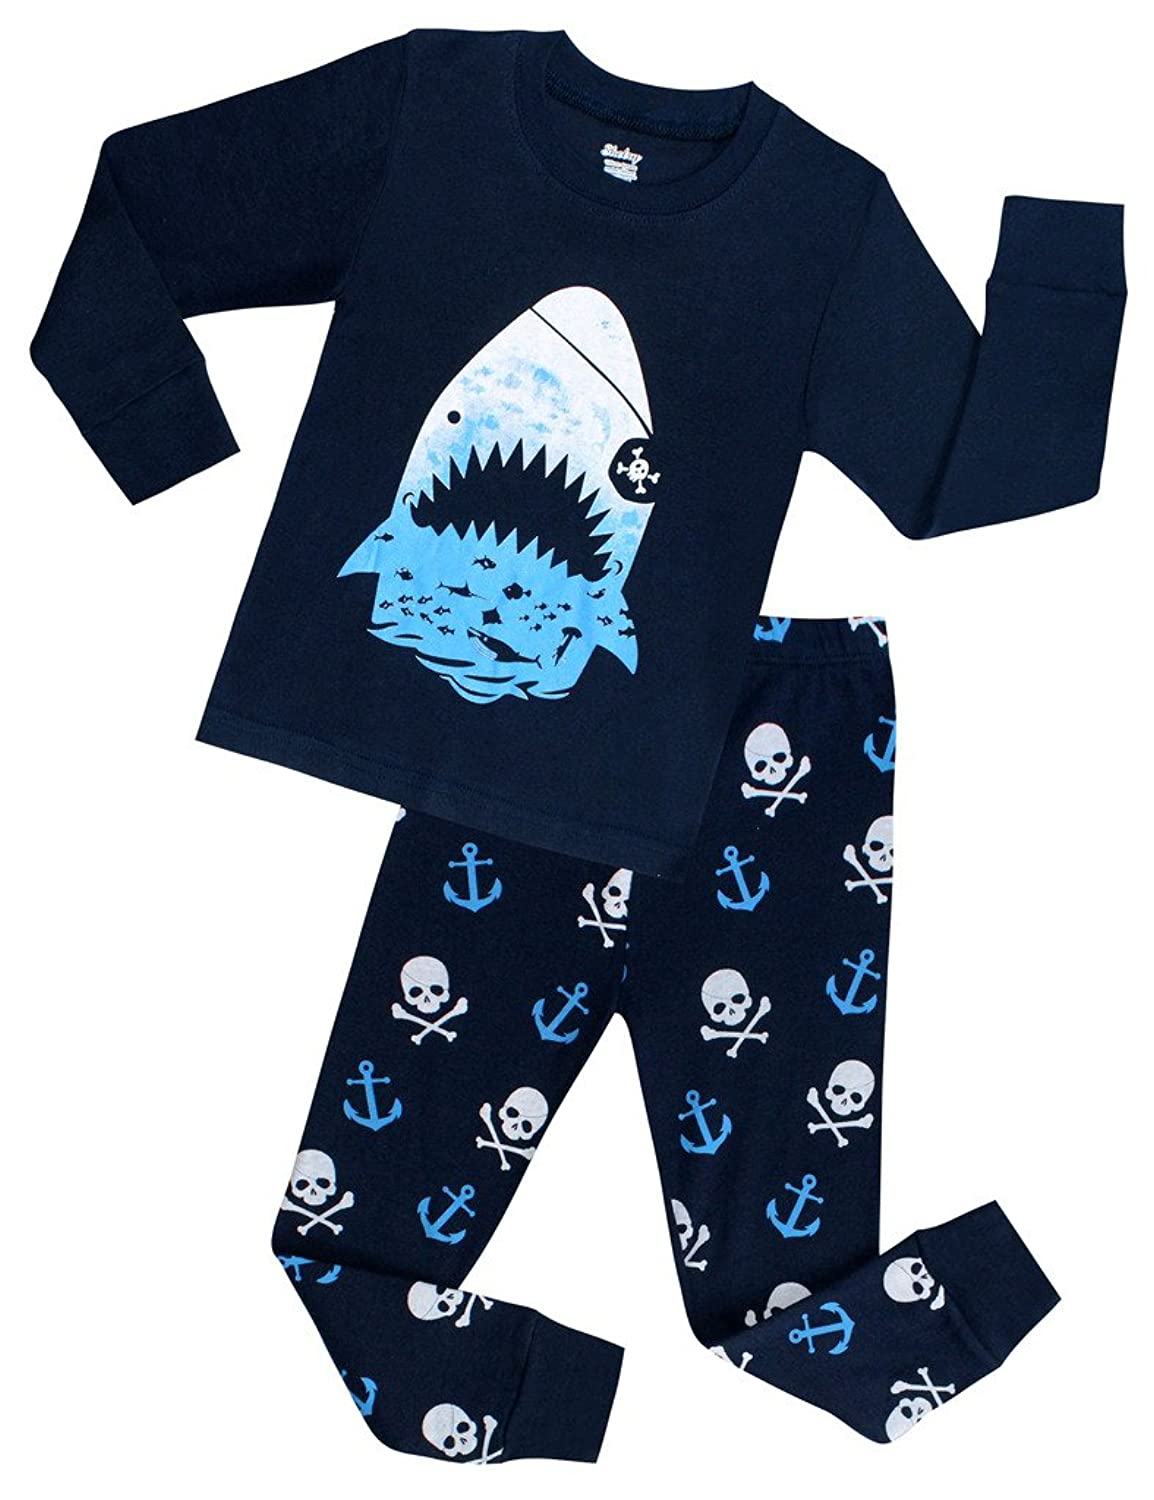 com boys shark pajamas children christmas pjs kids clothes com boys shark pajamas children christmas pjs kids clothes size 3 years clothing